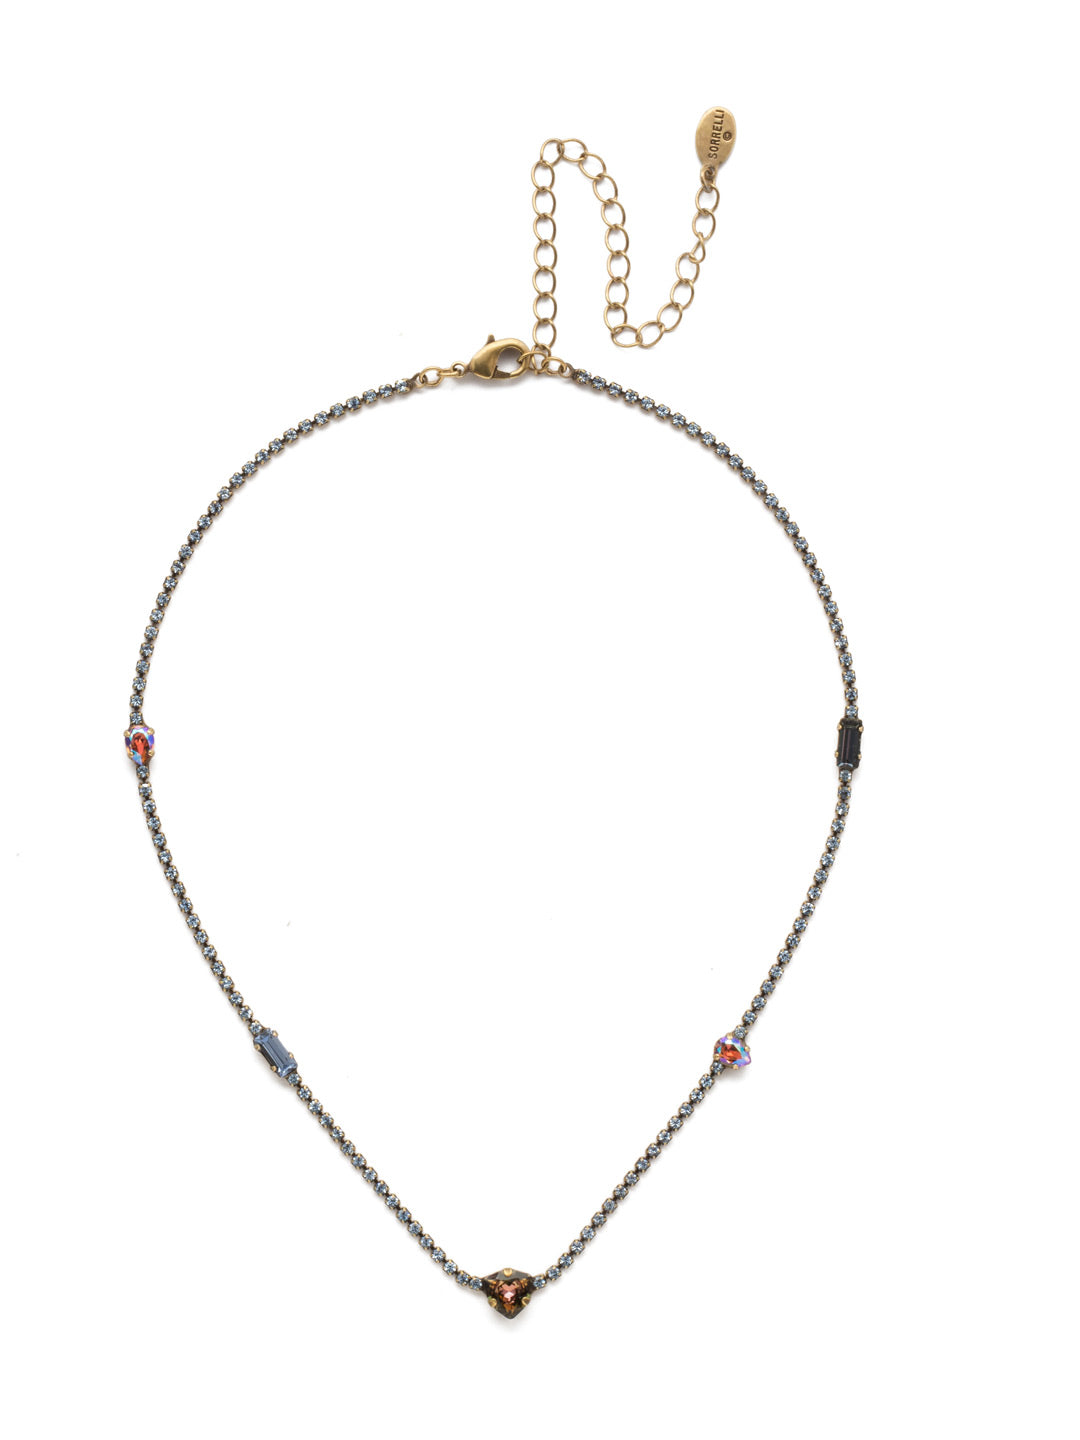 Ophelia Tennis Necklace - NEP9AGSDE